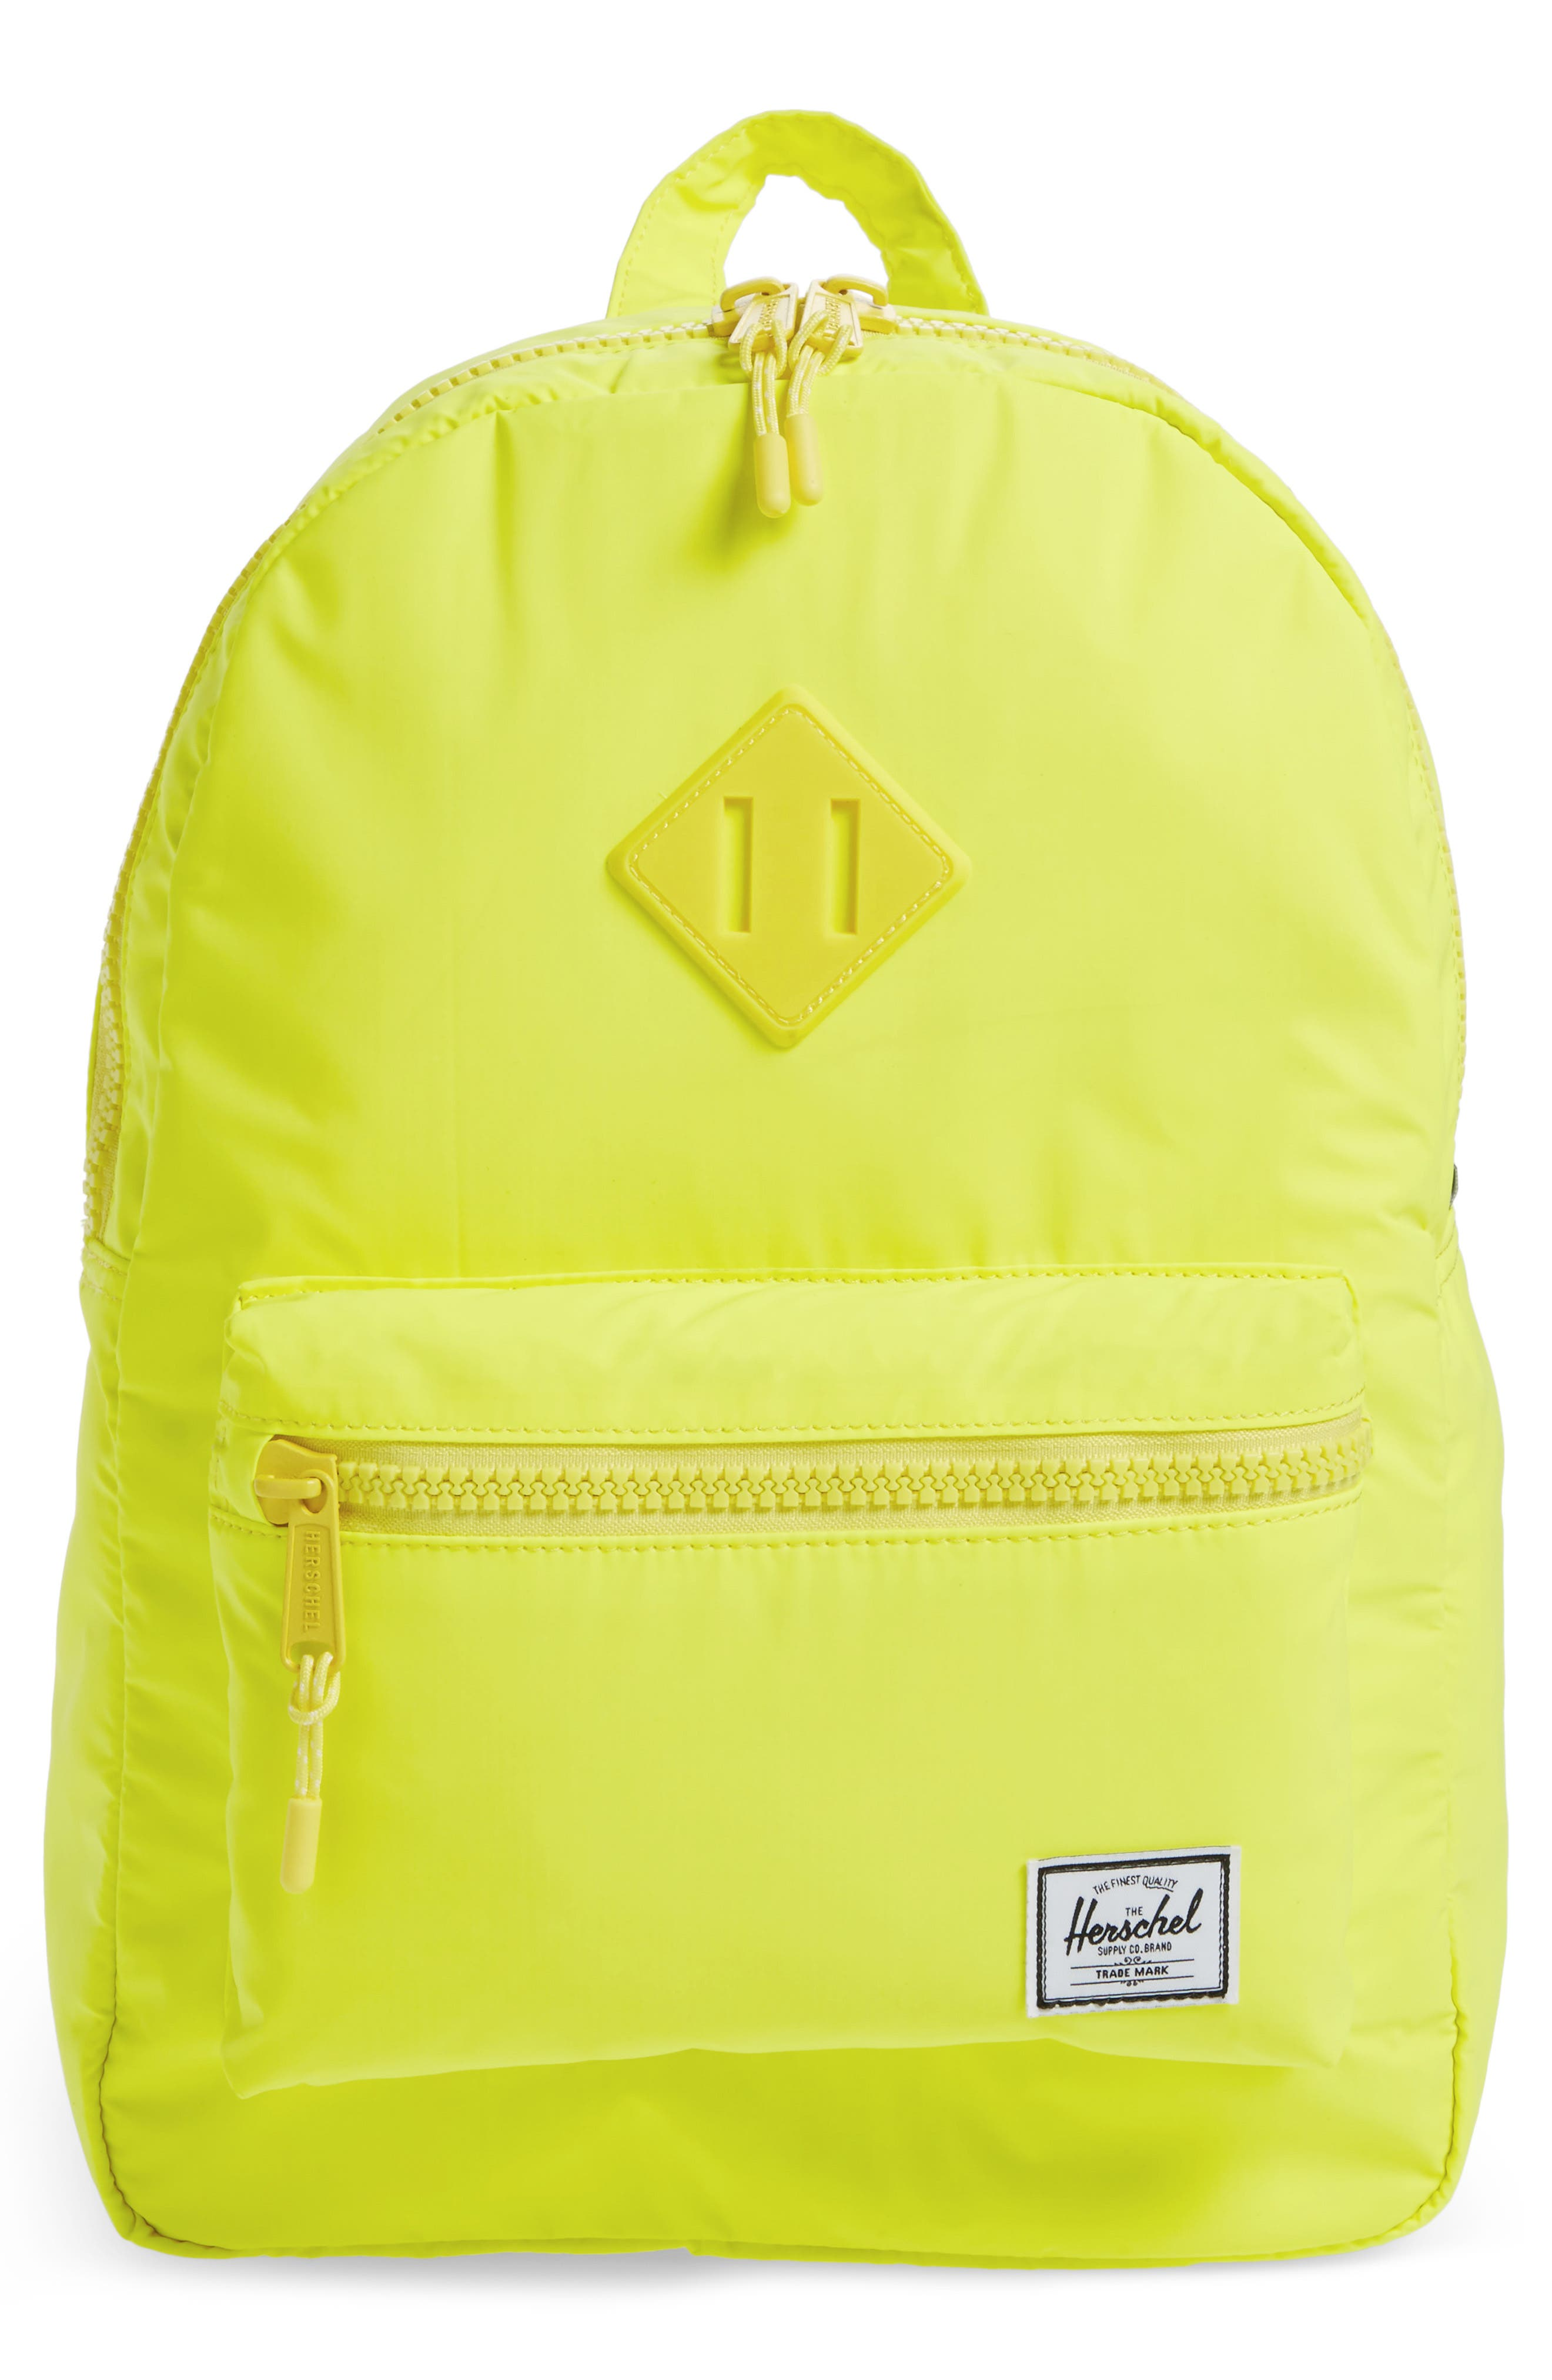 Heritage Backpack,                             Main thumbnail 1, color,                             Neon Yellow Reflective Rubber